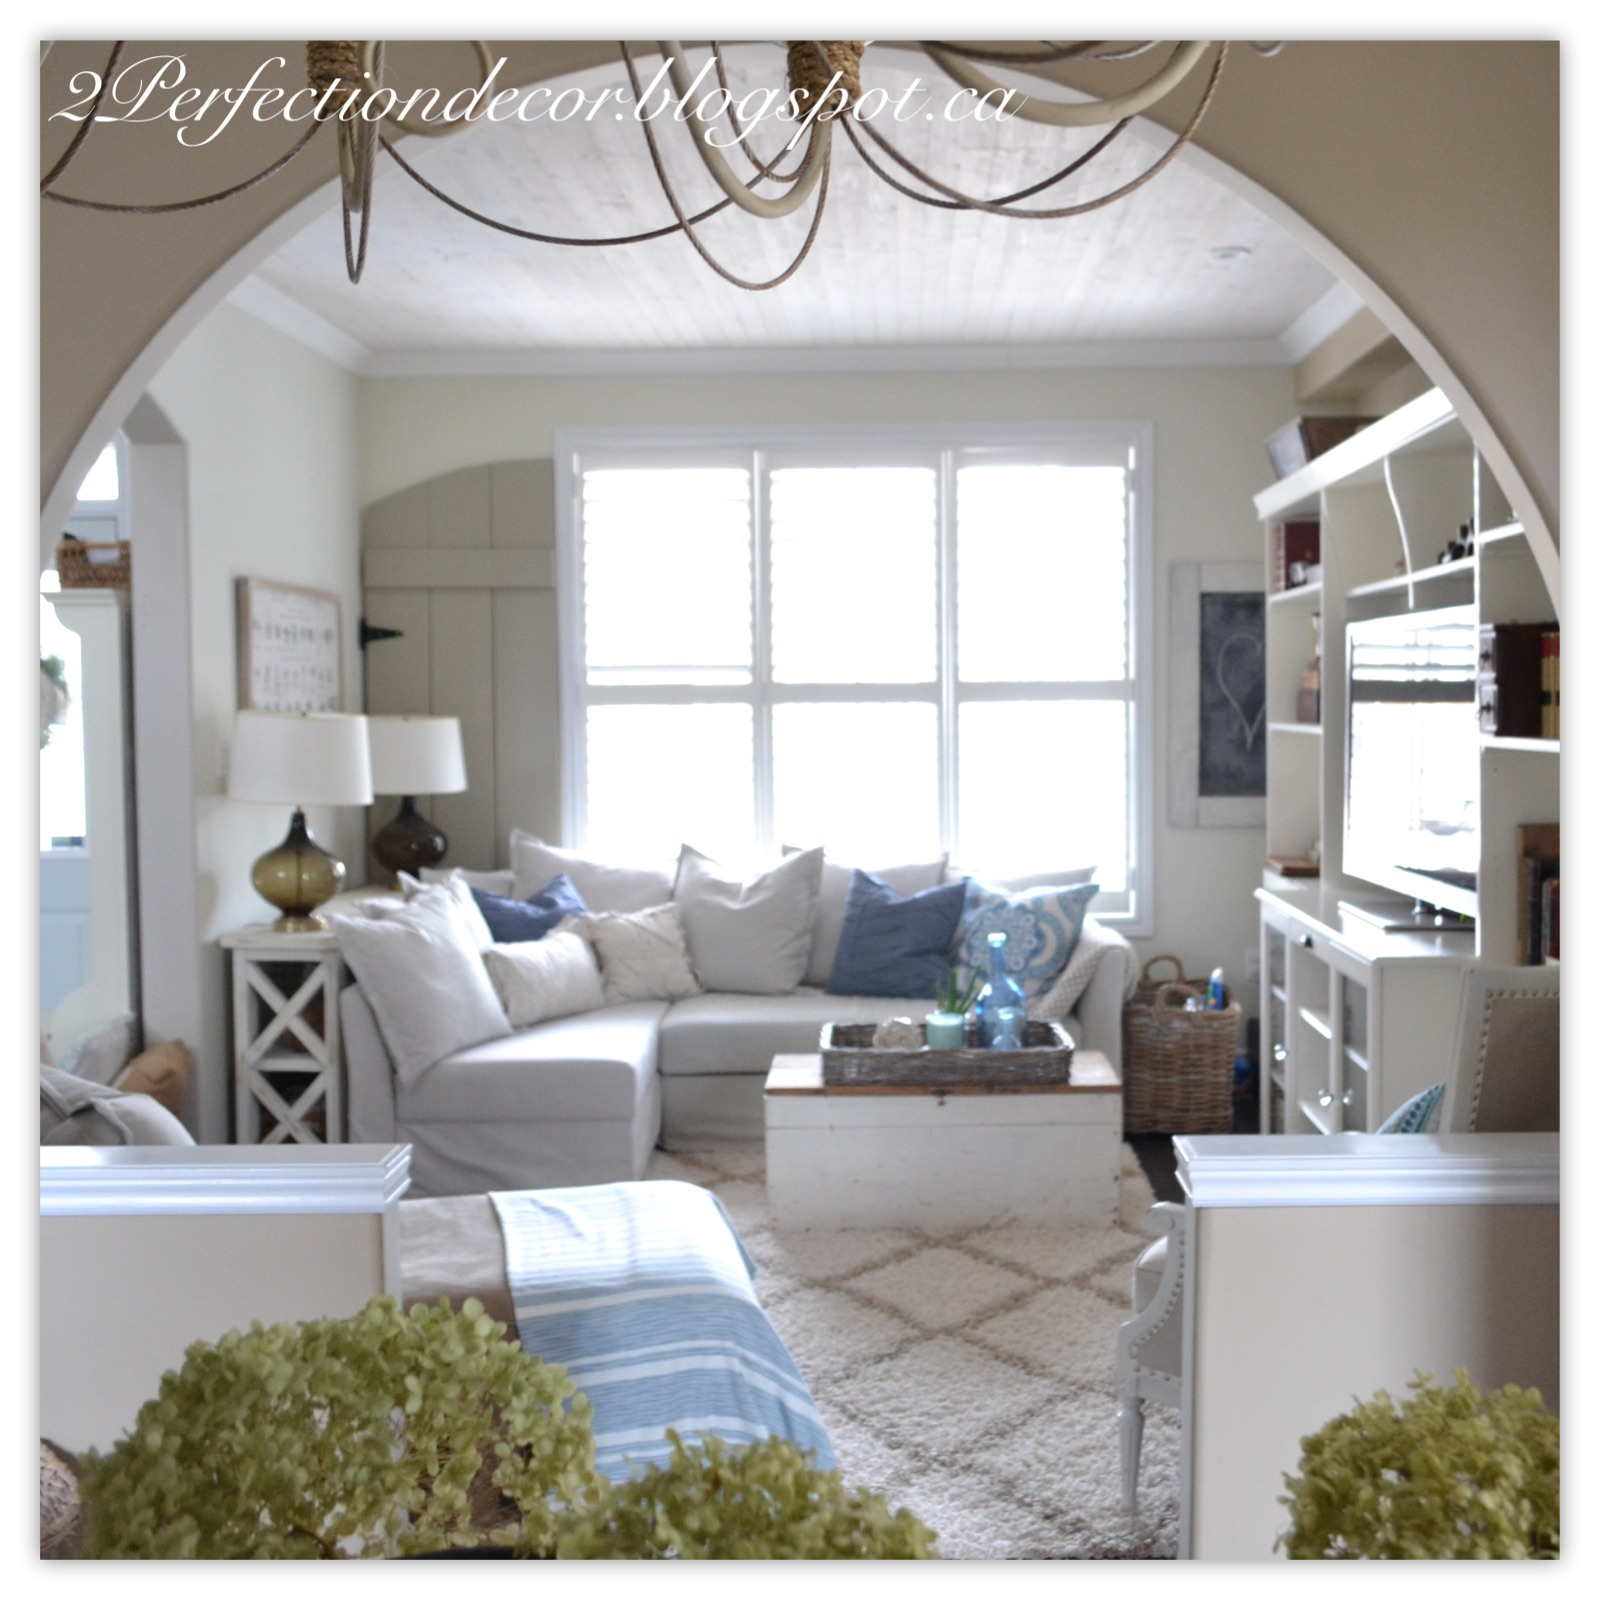 Here You Can See How Arches Open Up Into The Living Room Where Spring Theme Continue If Missed My Post On Decor In Our